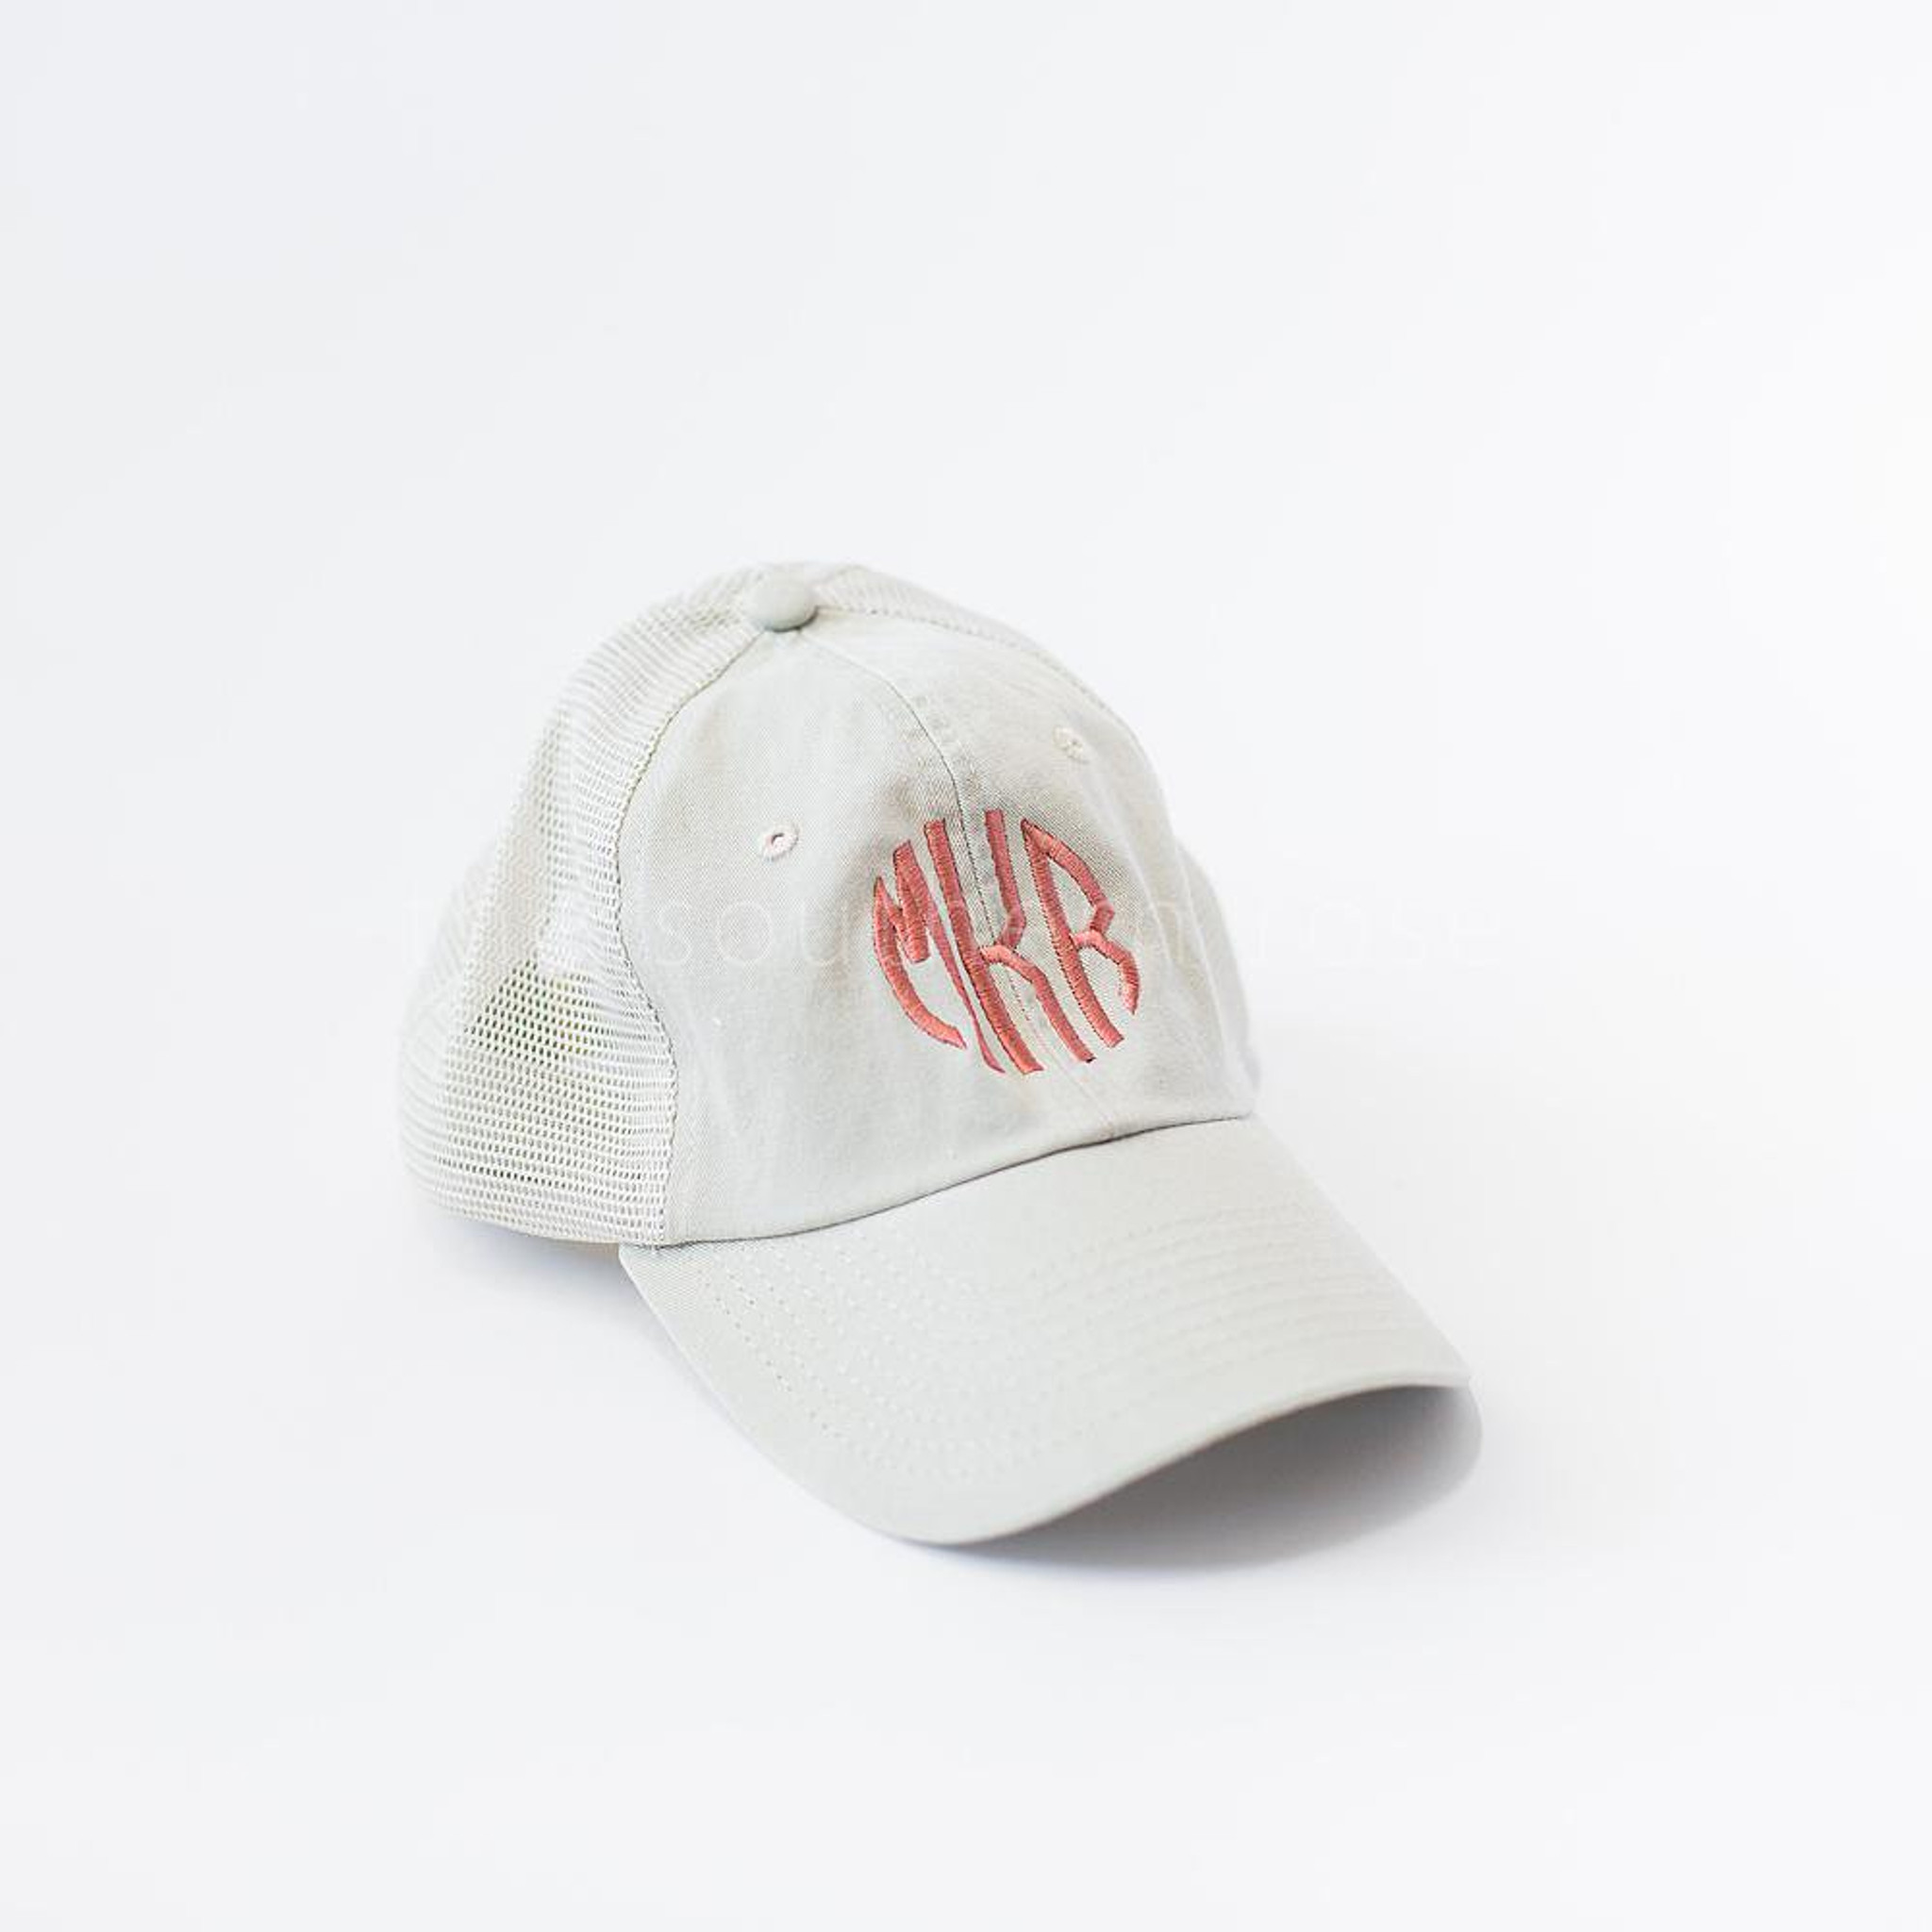 Monogrammed Trucker Hat - Tan